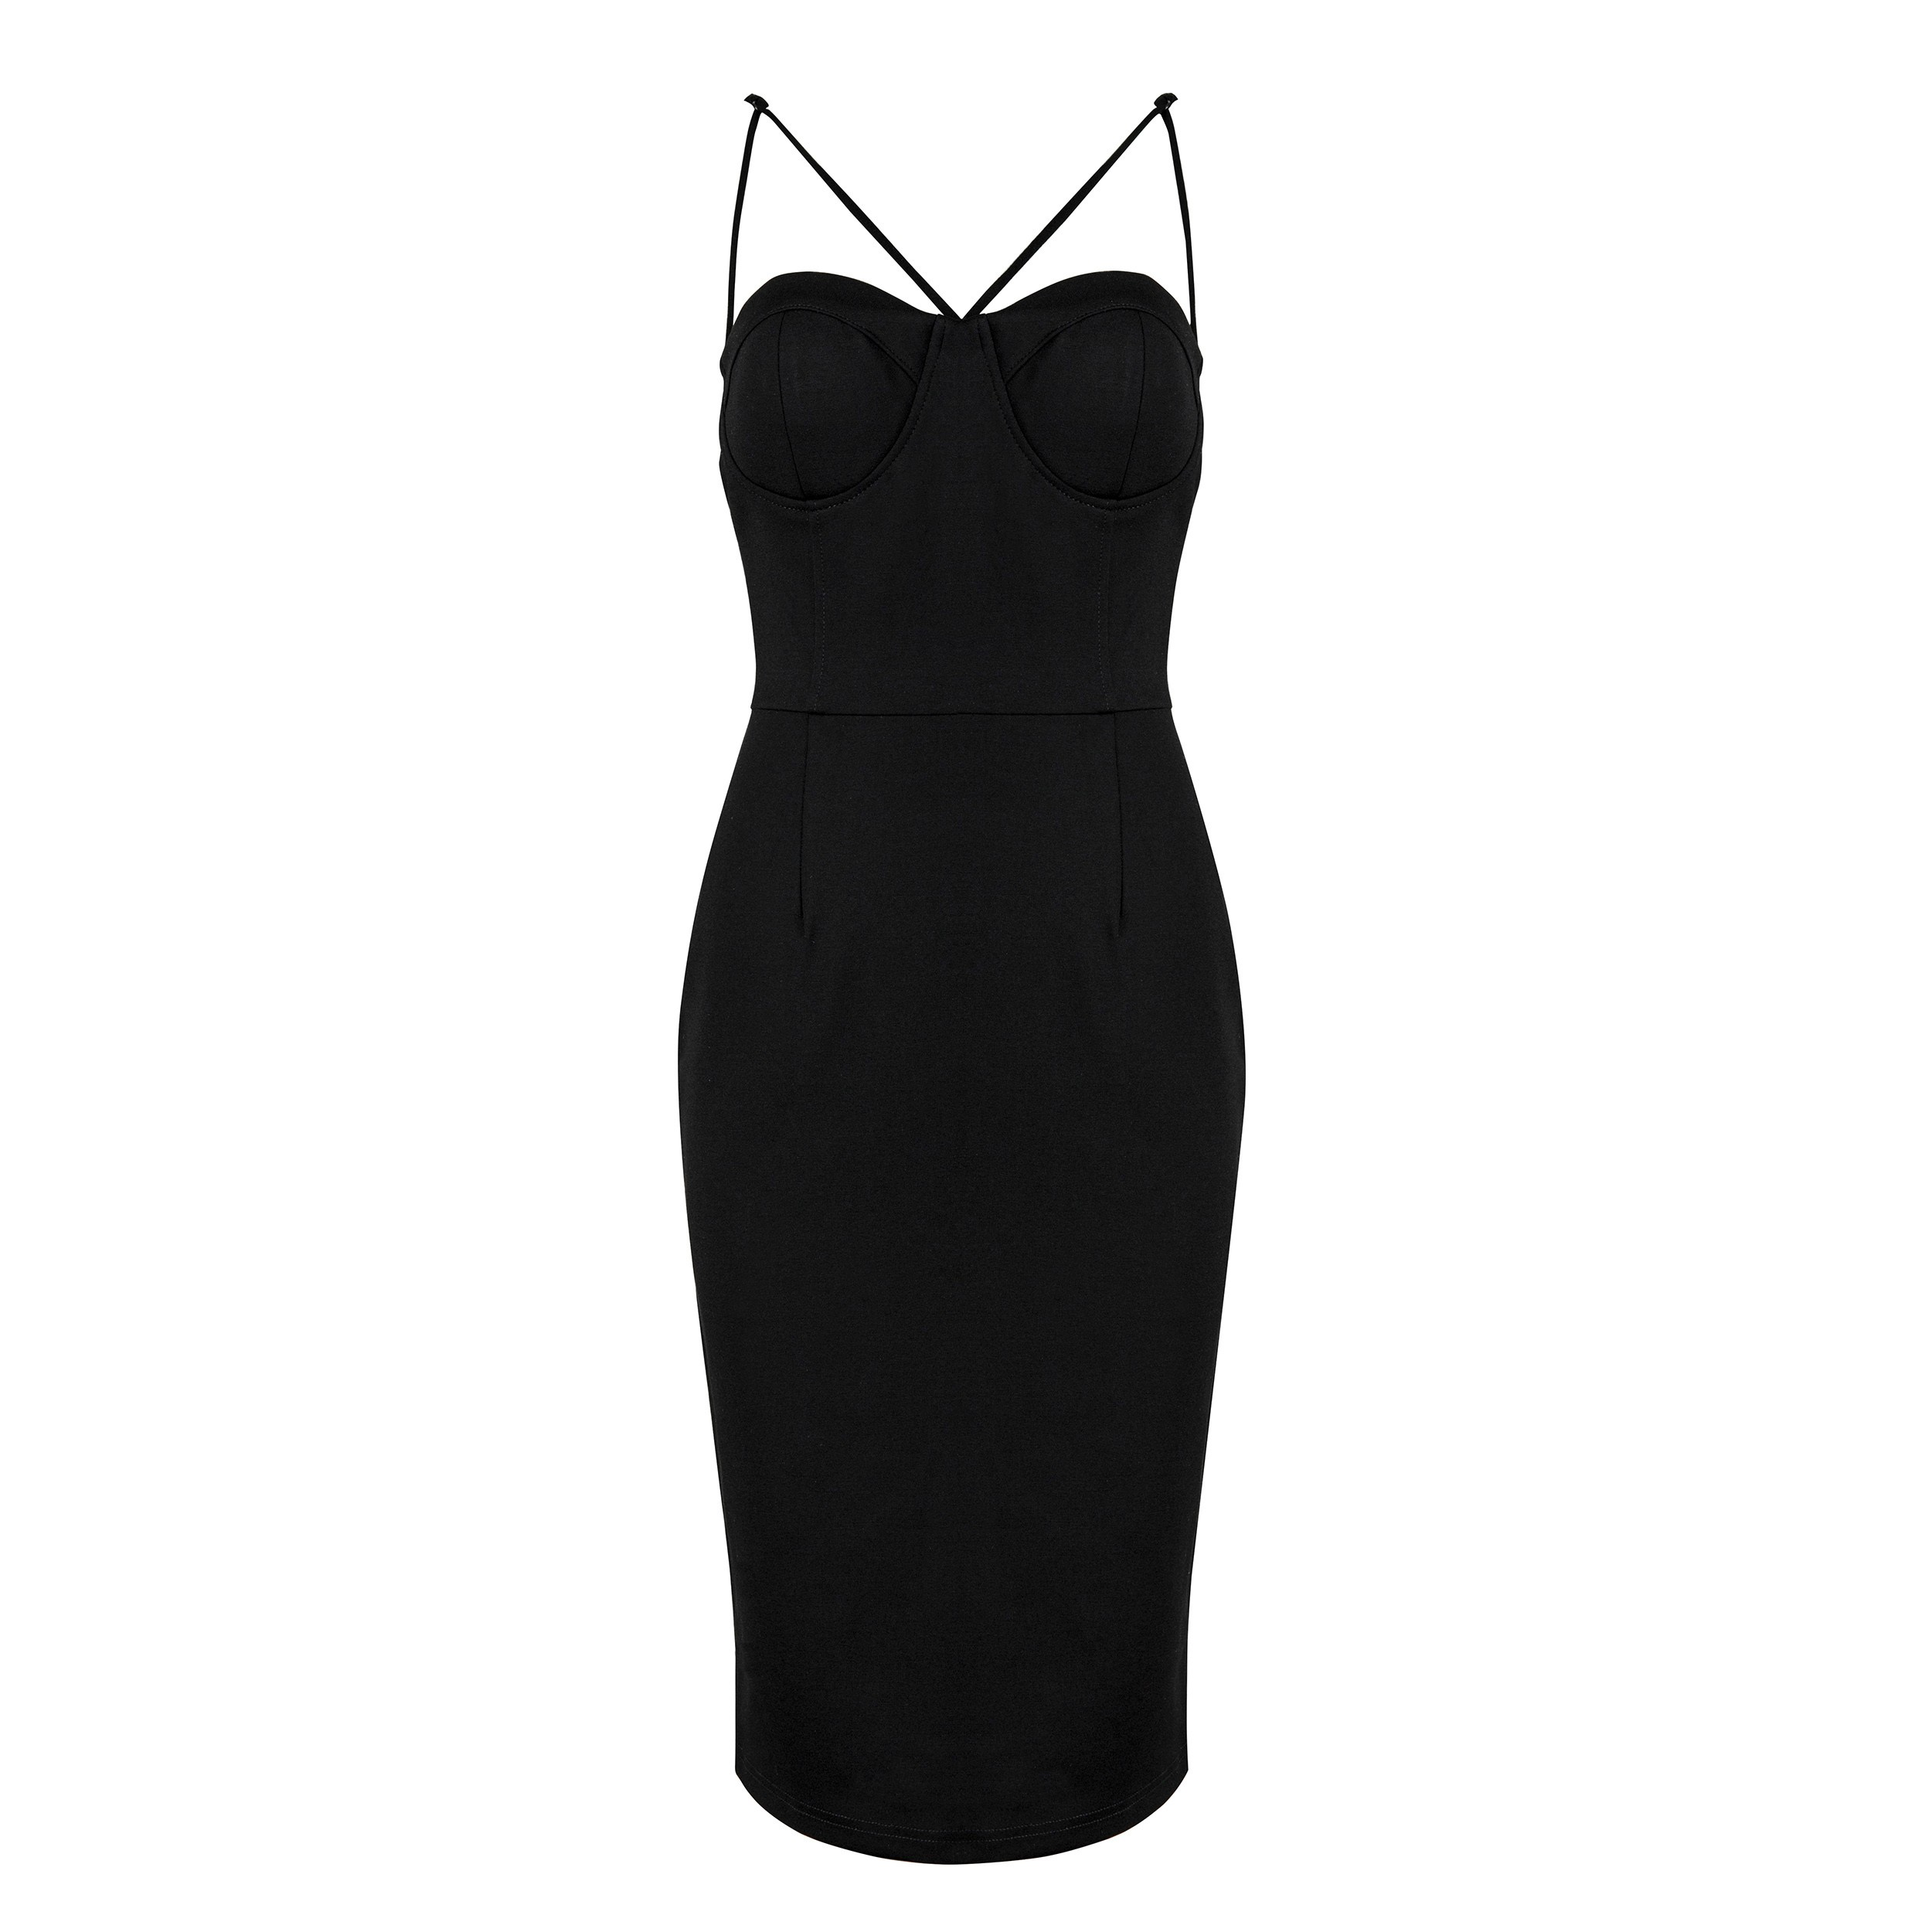 Black Strapy Sleeveless Over Knee Flat Party Bandage Dress HB4458-Black